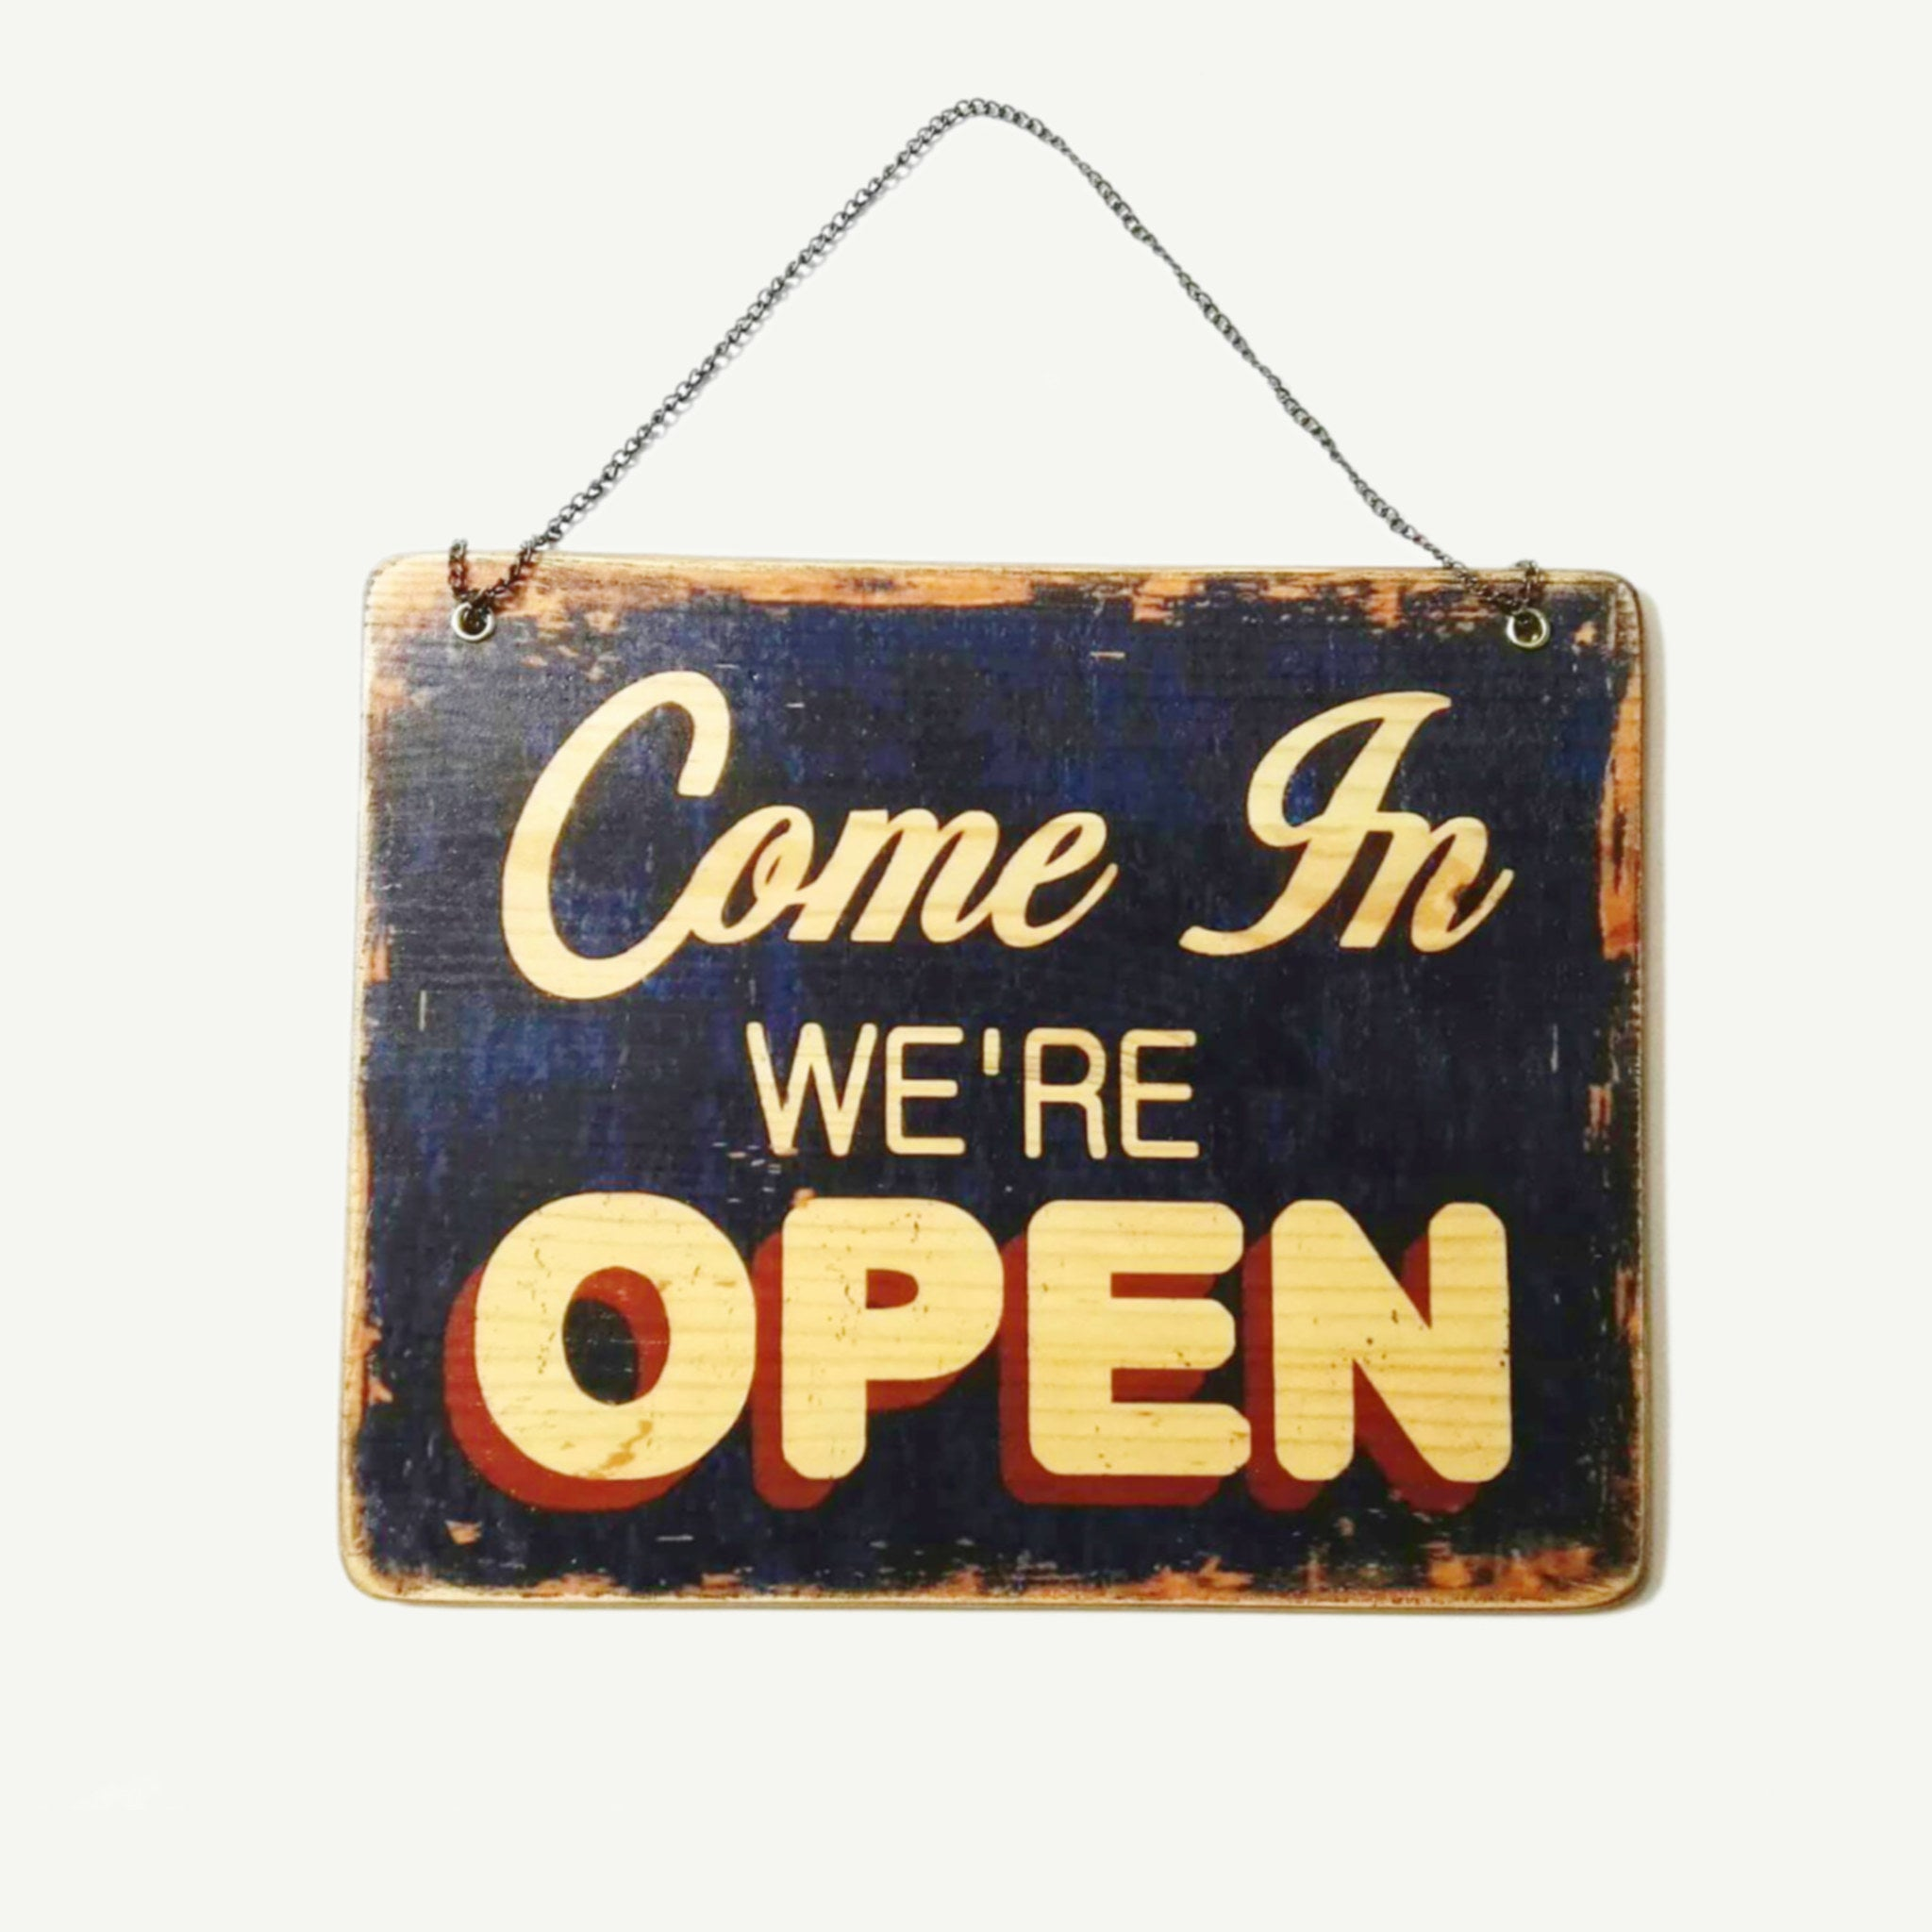 We are open - Closed - Shop door sign - Artisanal Pop Art woodprint - www.artesanalwoodprint.com